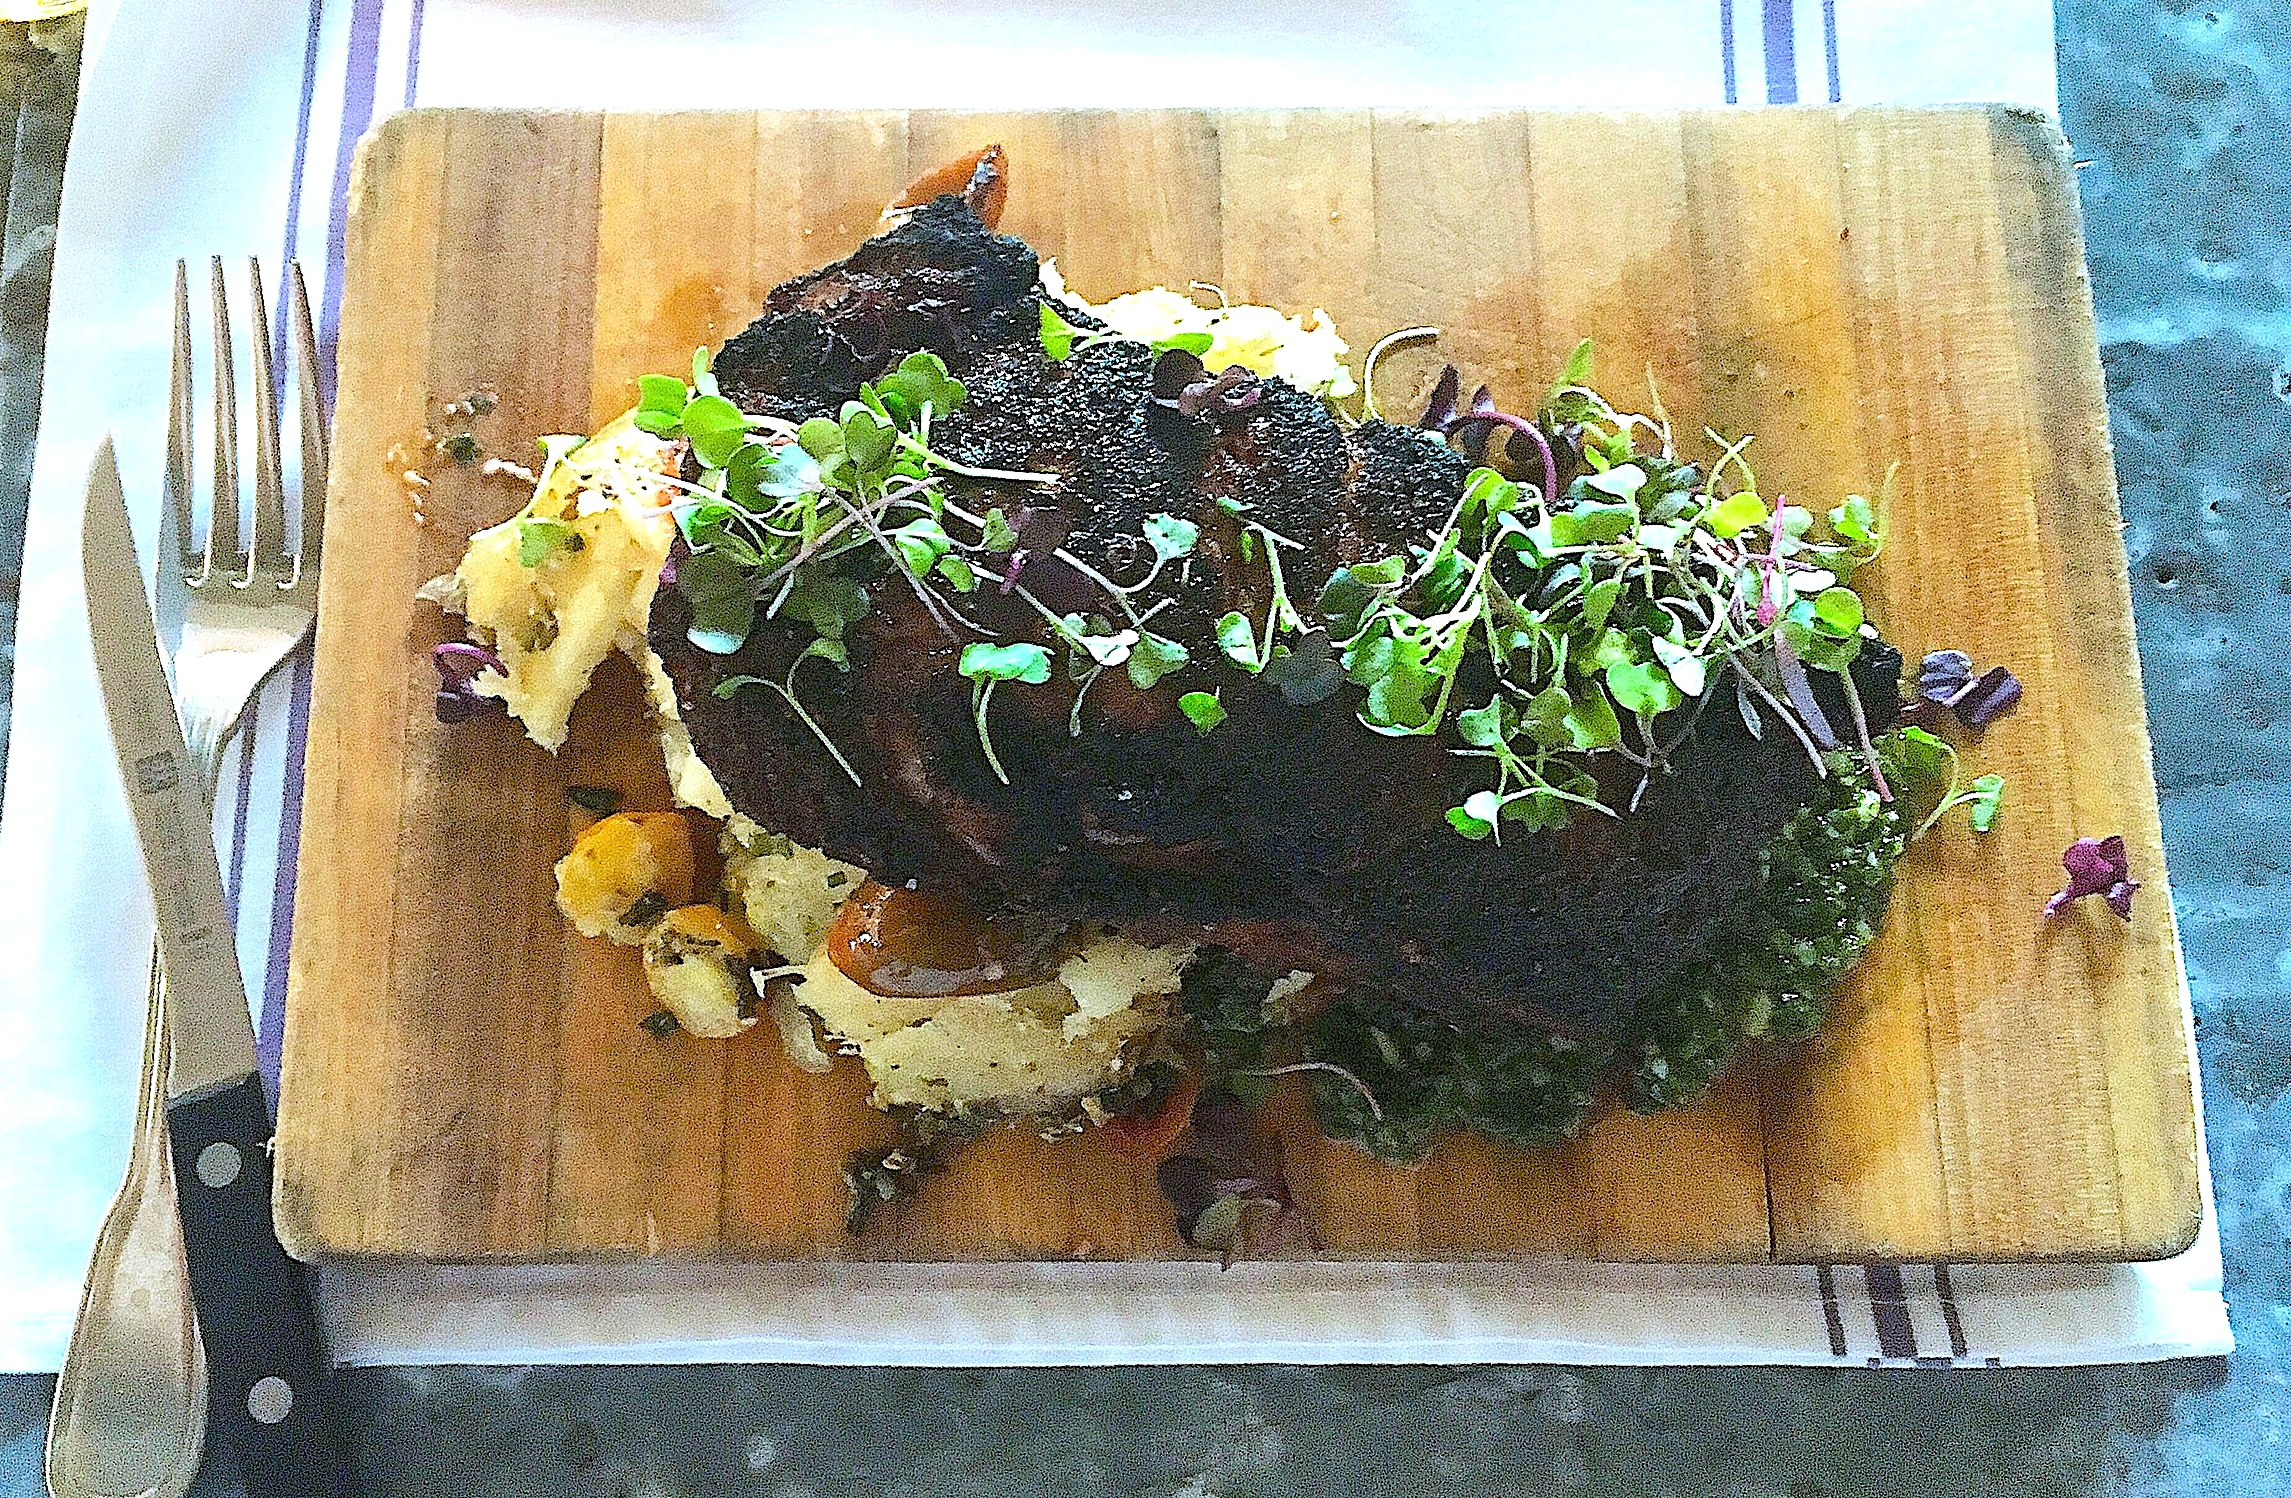 16 oz. espresso rubbed dry-aged rib eye // oven roasted yucca, baby heirloom tomatoes, house chimichurri